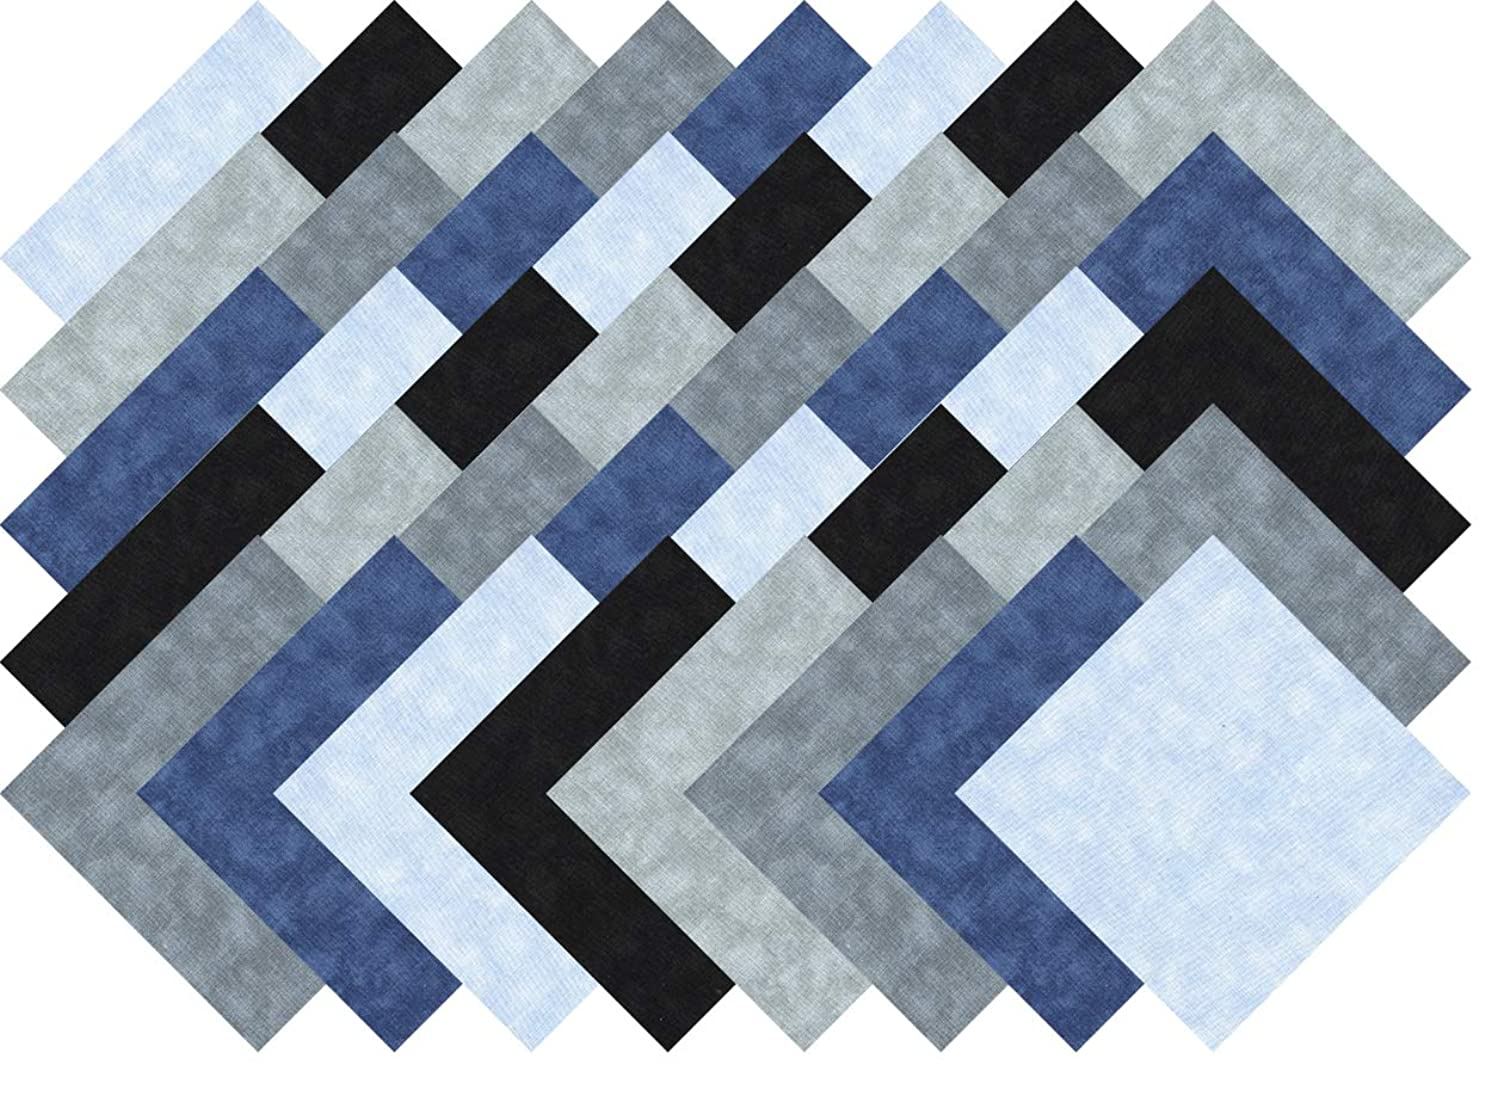 Gray Blue Black Collection 40 Precut 5-inch Quilting Fabric Charm Squares